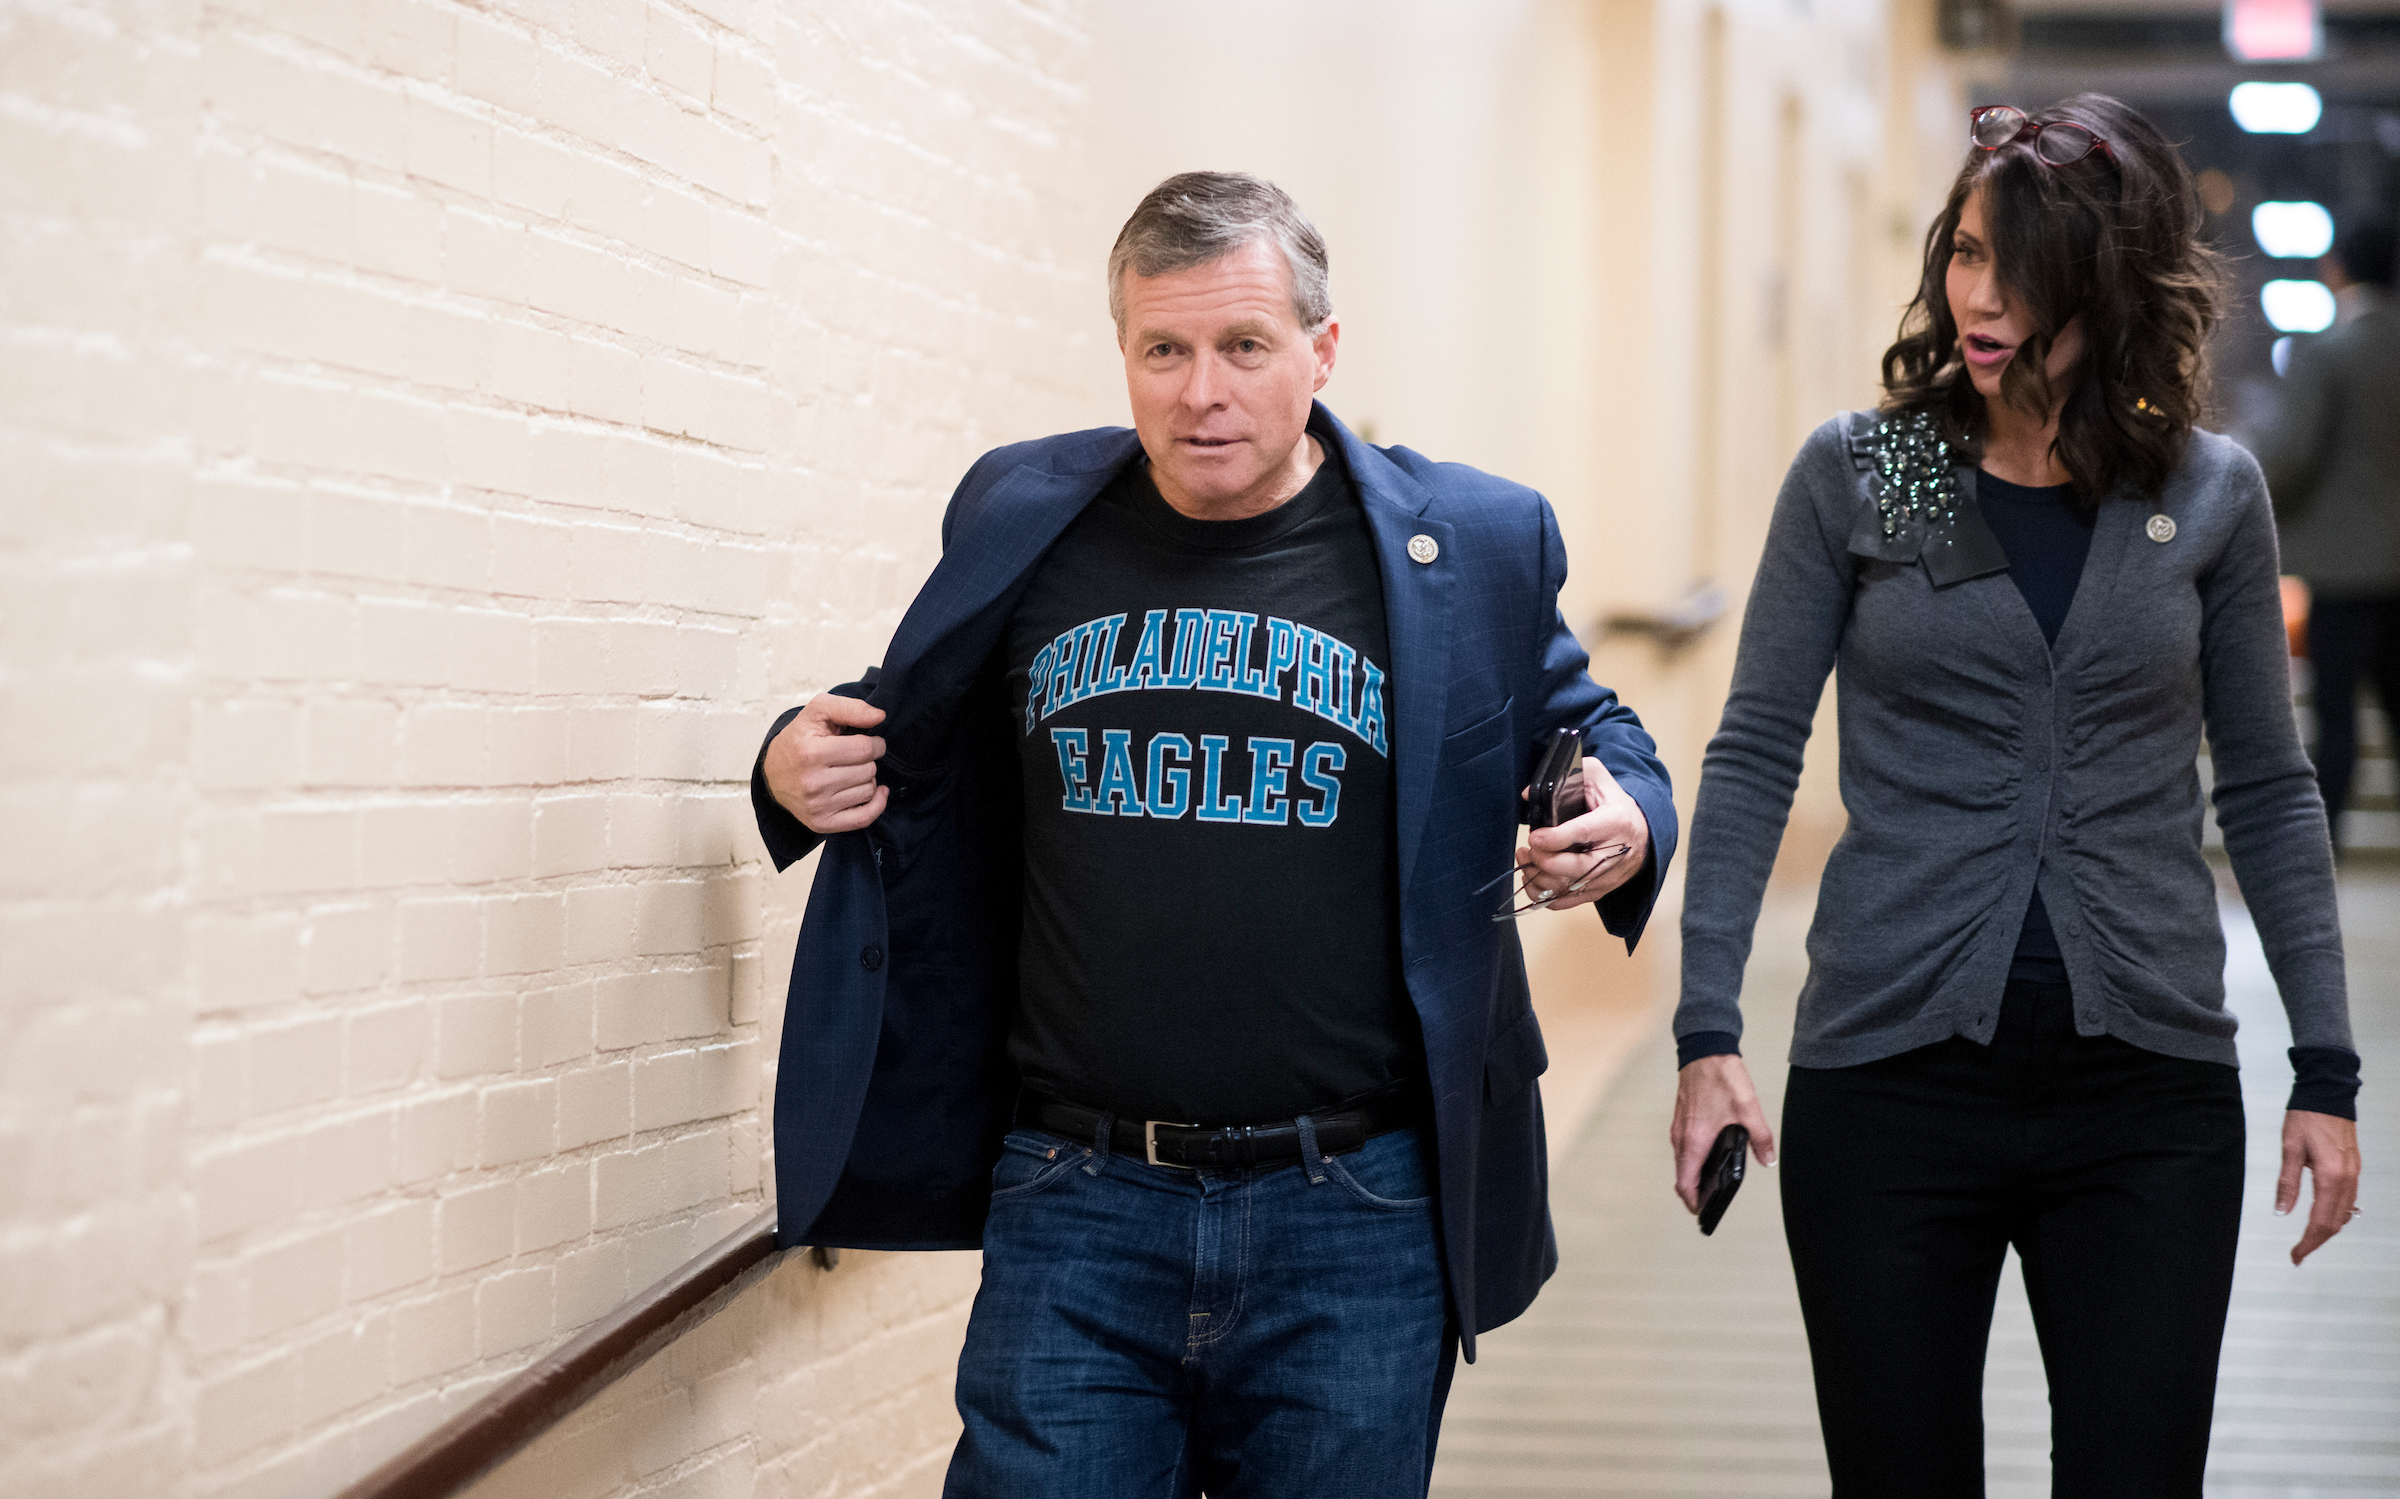 Rep. Charlie Dent, R-Pa., flashes his Philadelphia Eagles shirt as Rep. Kristi Noem, R-S. Dak., looks on as they arrive for the House Republican Conference meeting in the Capitol on Monday. The Philadelphia Eagles will face off against the New England Patriots in the Super Bowl. (Bill Clark/CQ Roll Call)